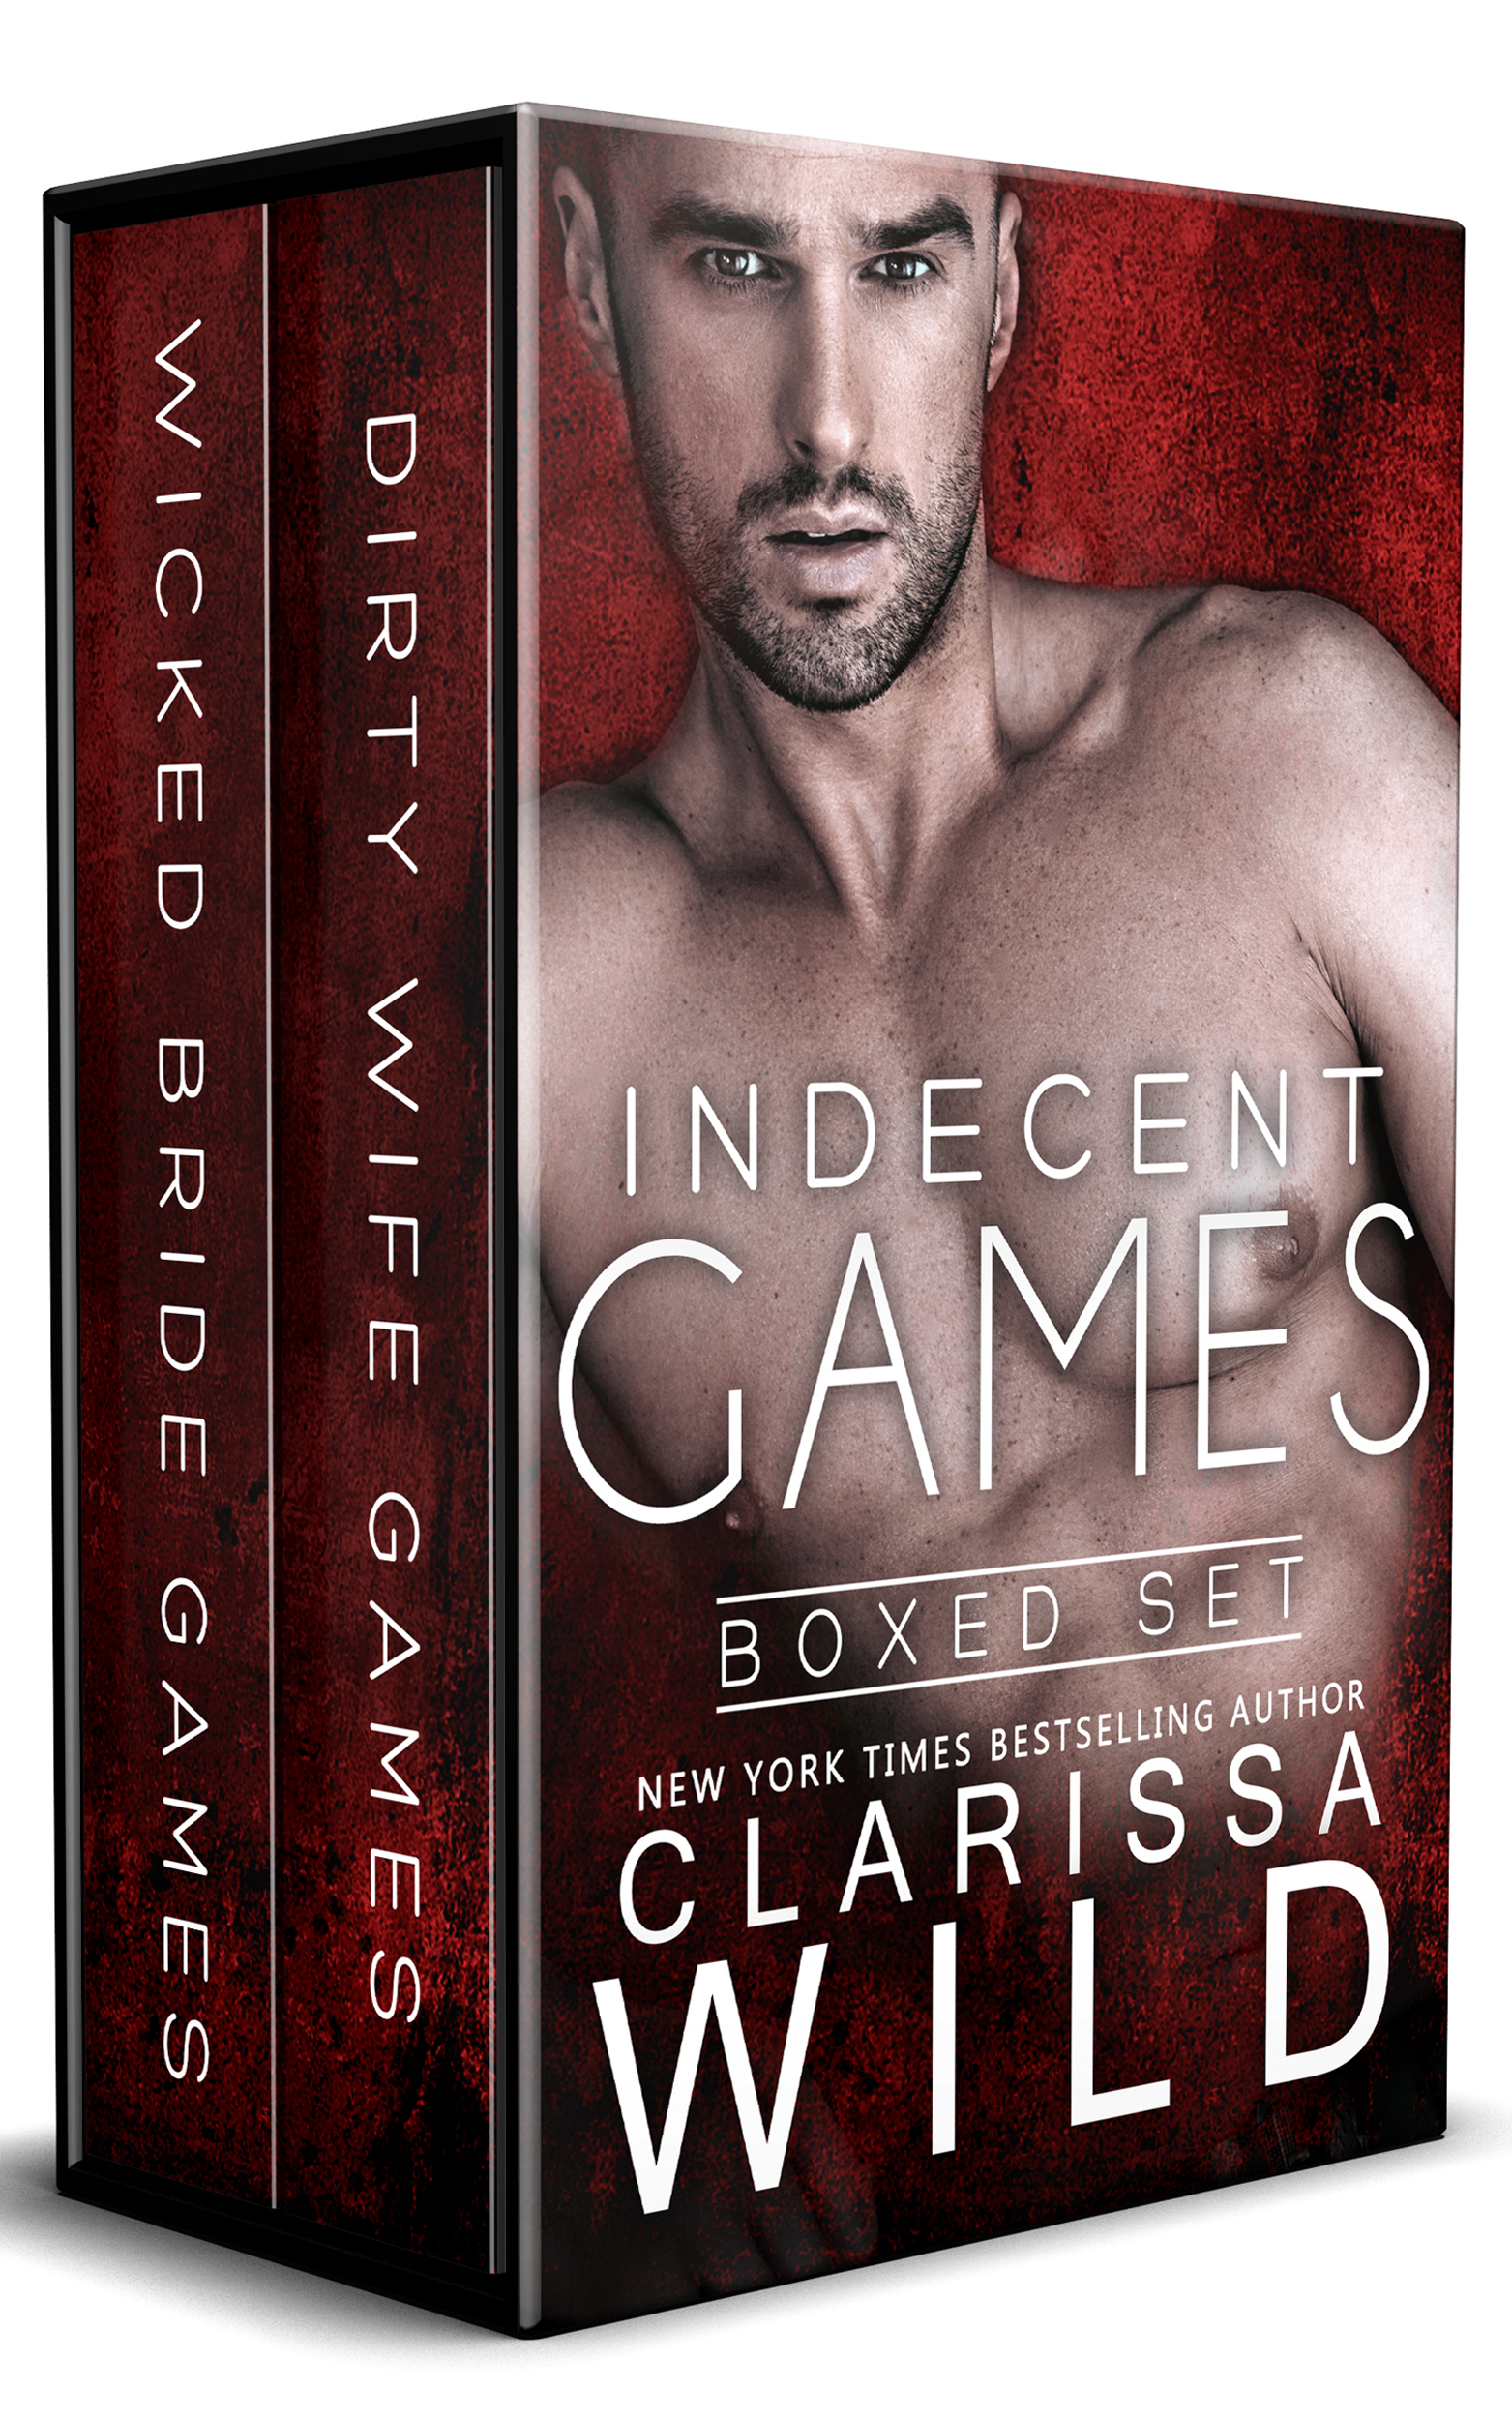 Indecent Games Boxed Set